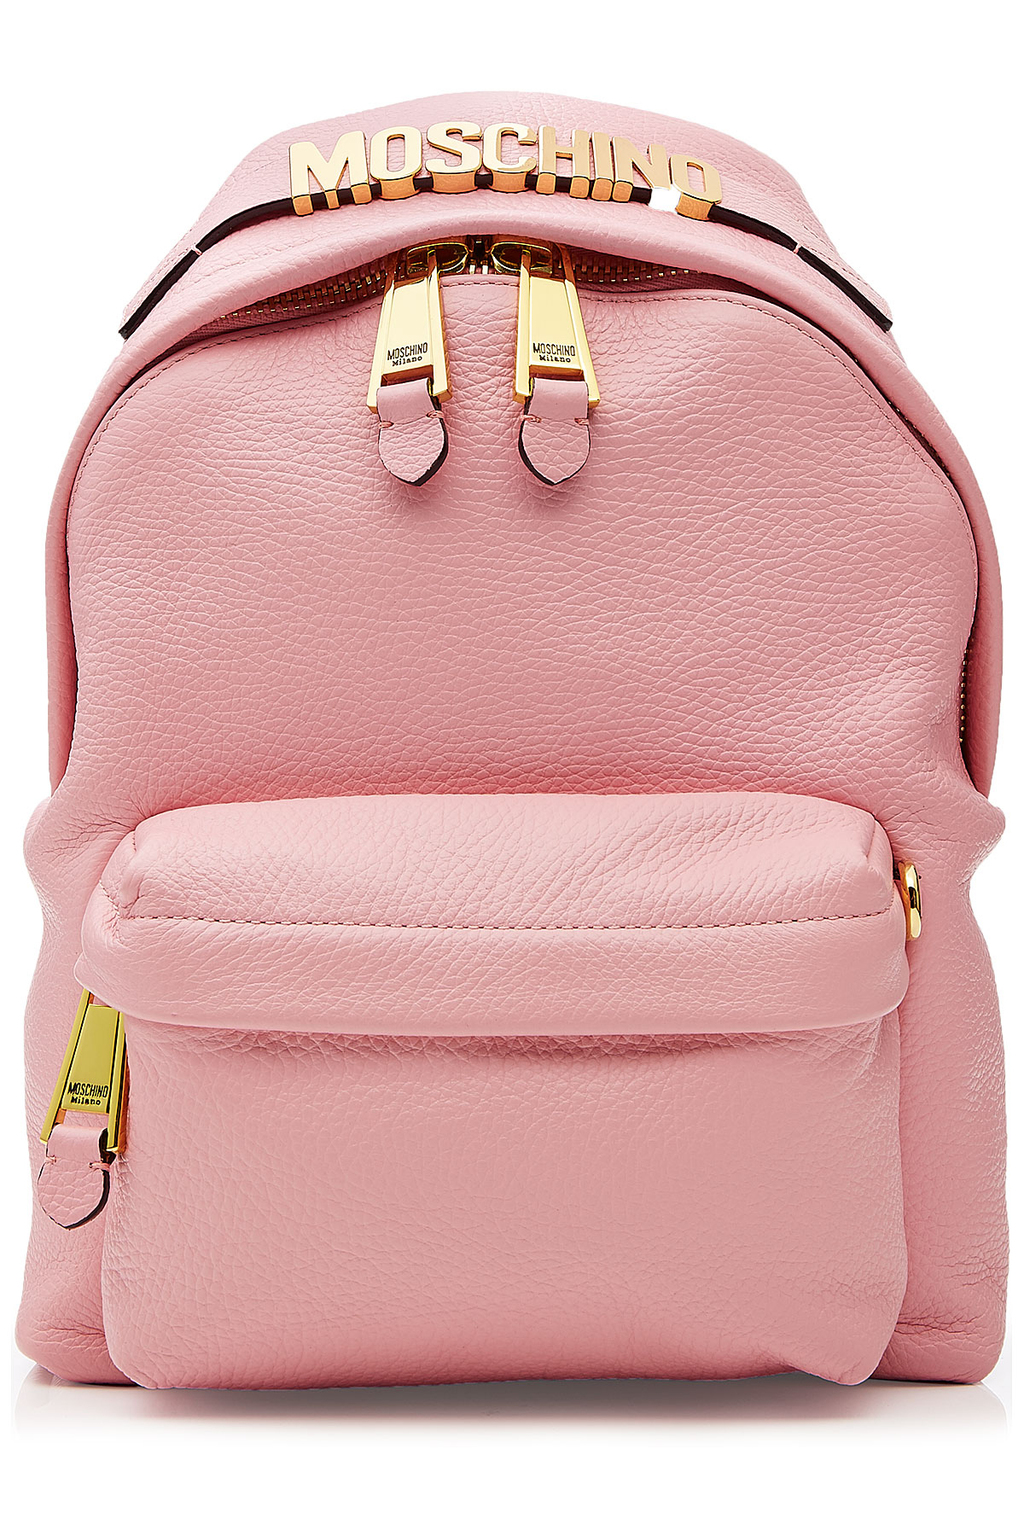 Leather Backpack With Gilded Logo Embellishment - predominant colour: pink; occasions: casual, creative work; type of pattern: standard; style: rucksack; length: rucksack; size: standard; material: leather; pattern: plain; finish: plain; season: s/s 2016; wardrobe: highlight